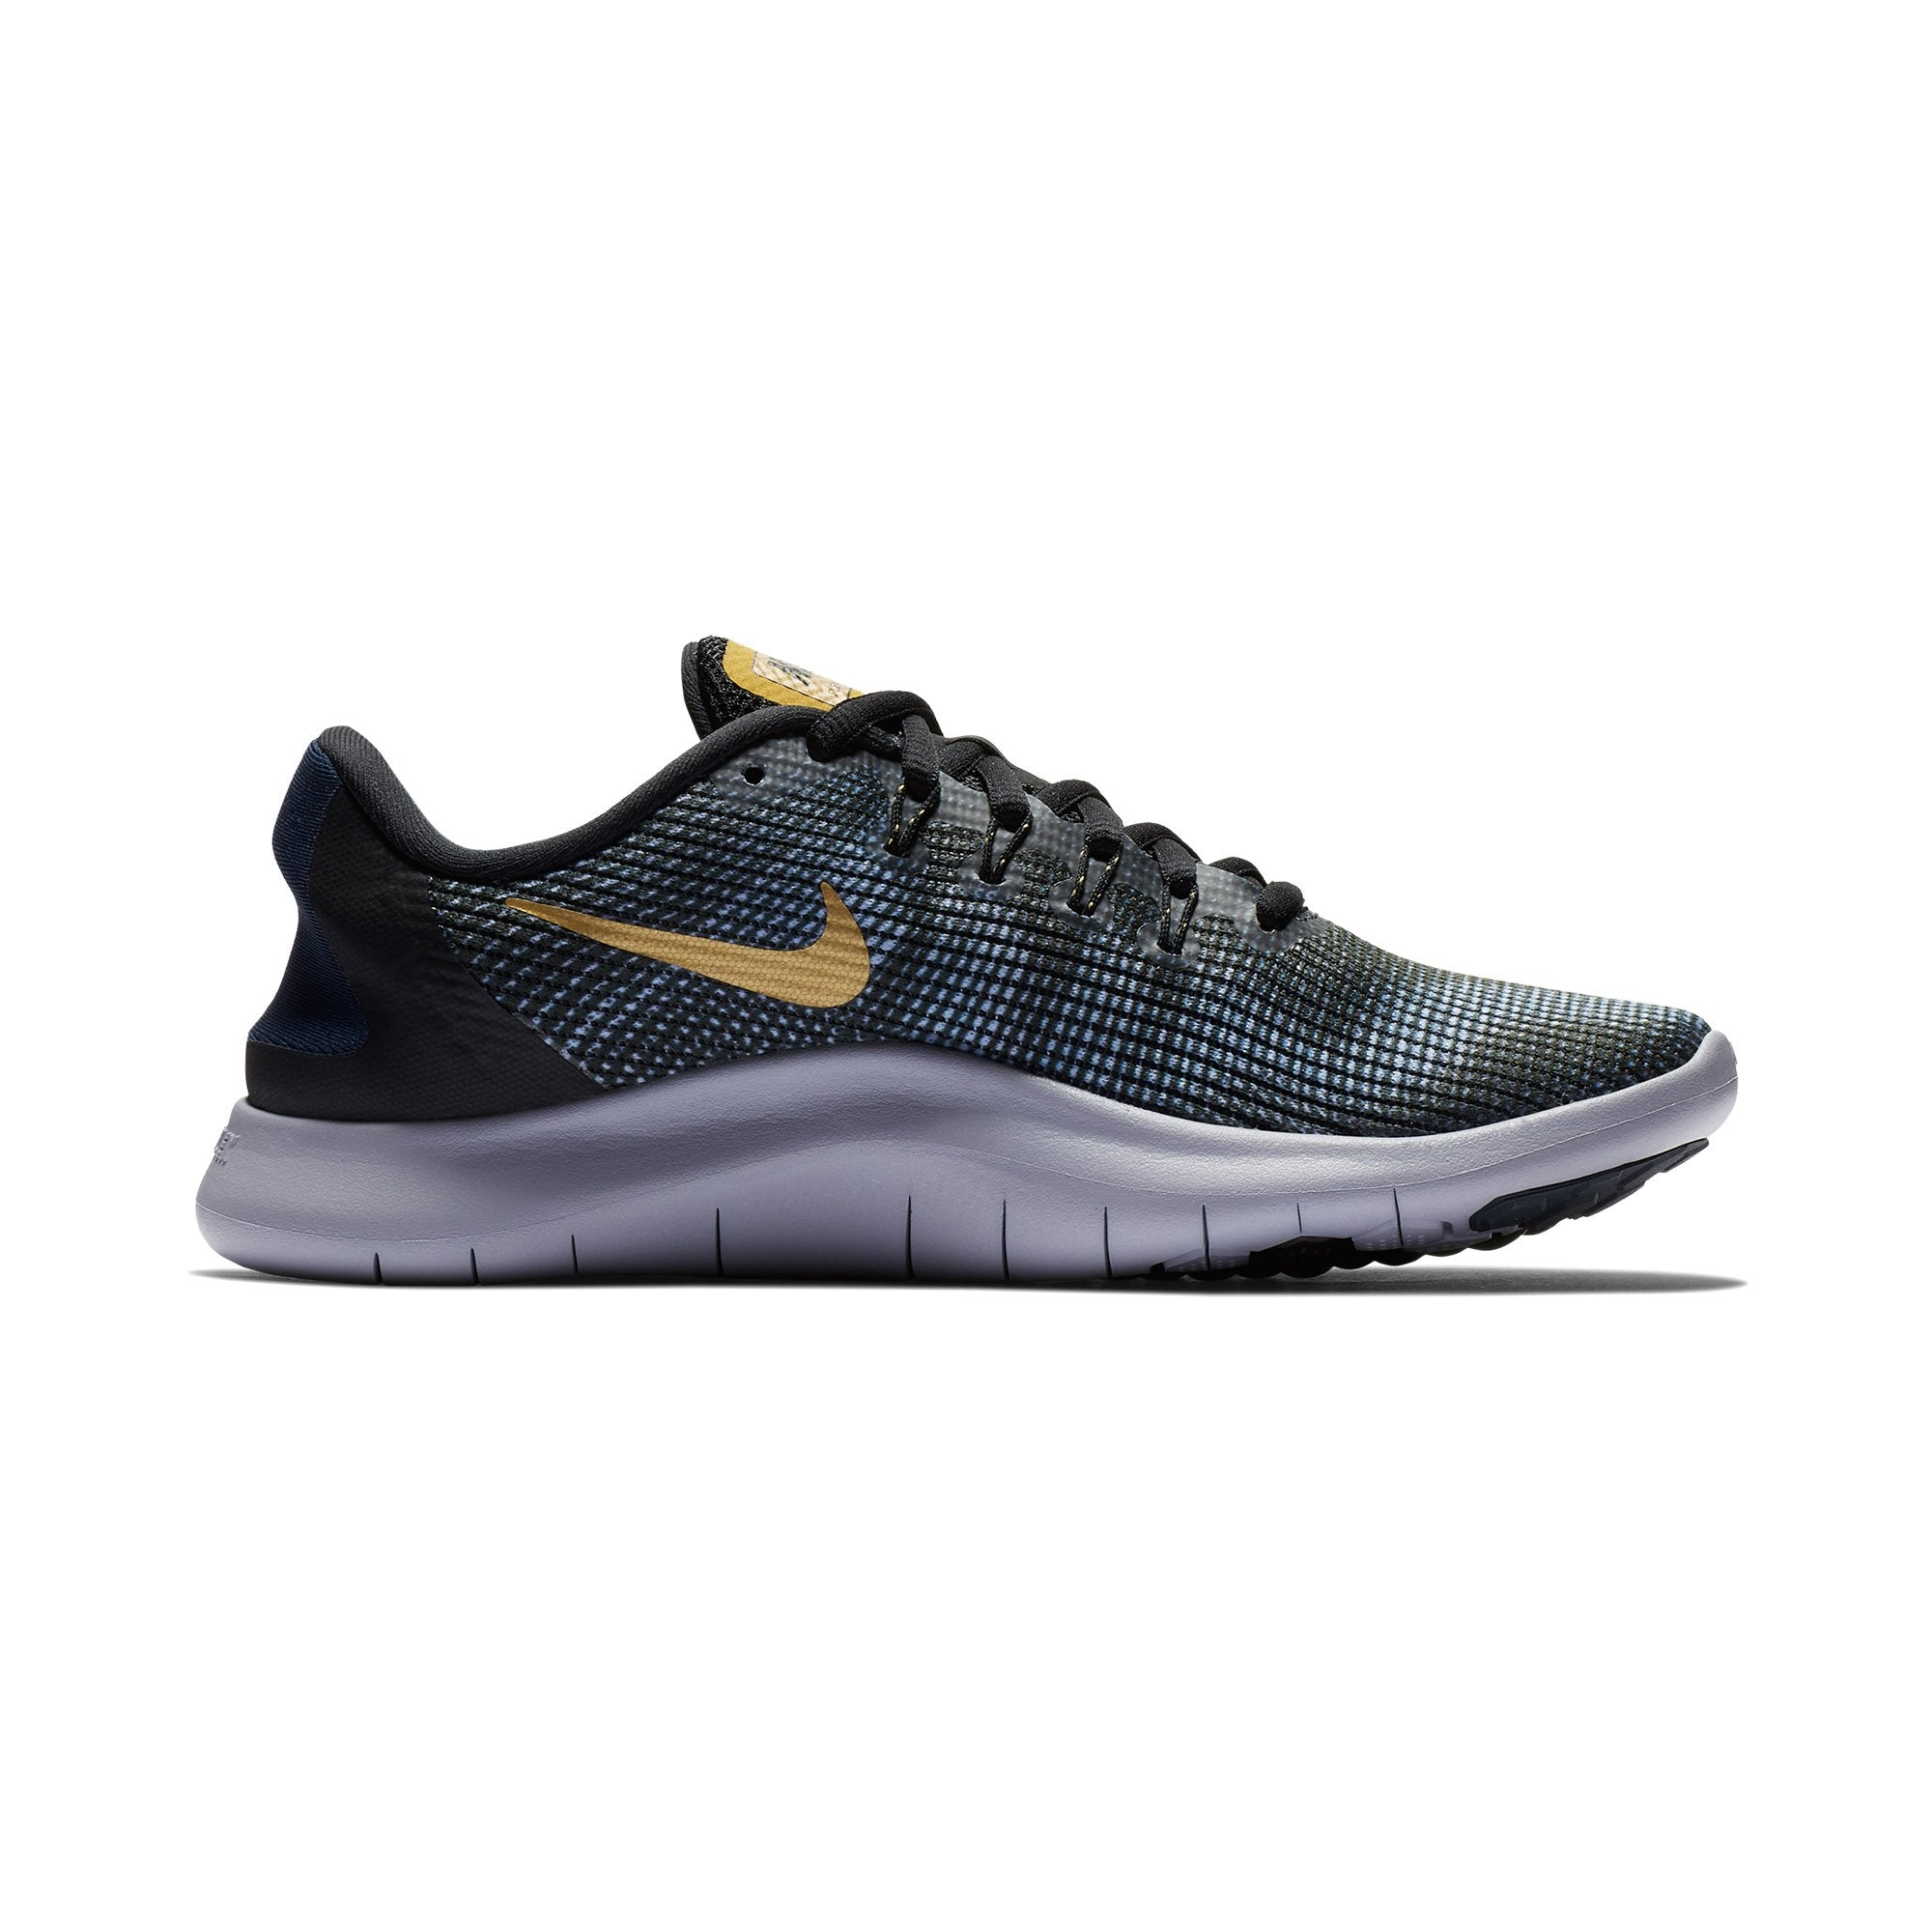 993ce7cf06b8 Buy Nike Women Flex Rn 2018 Running Shoes